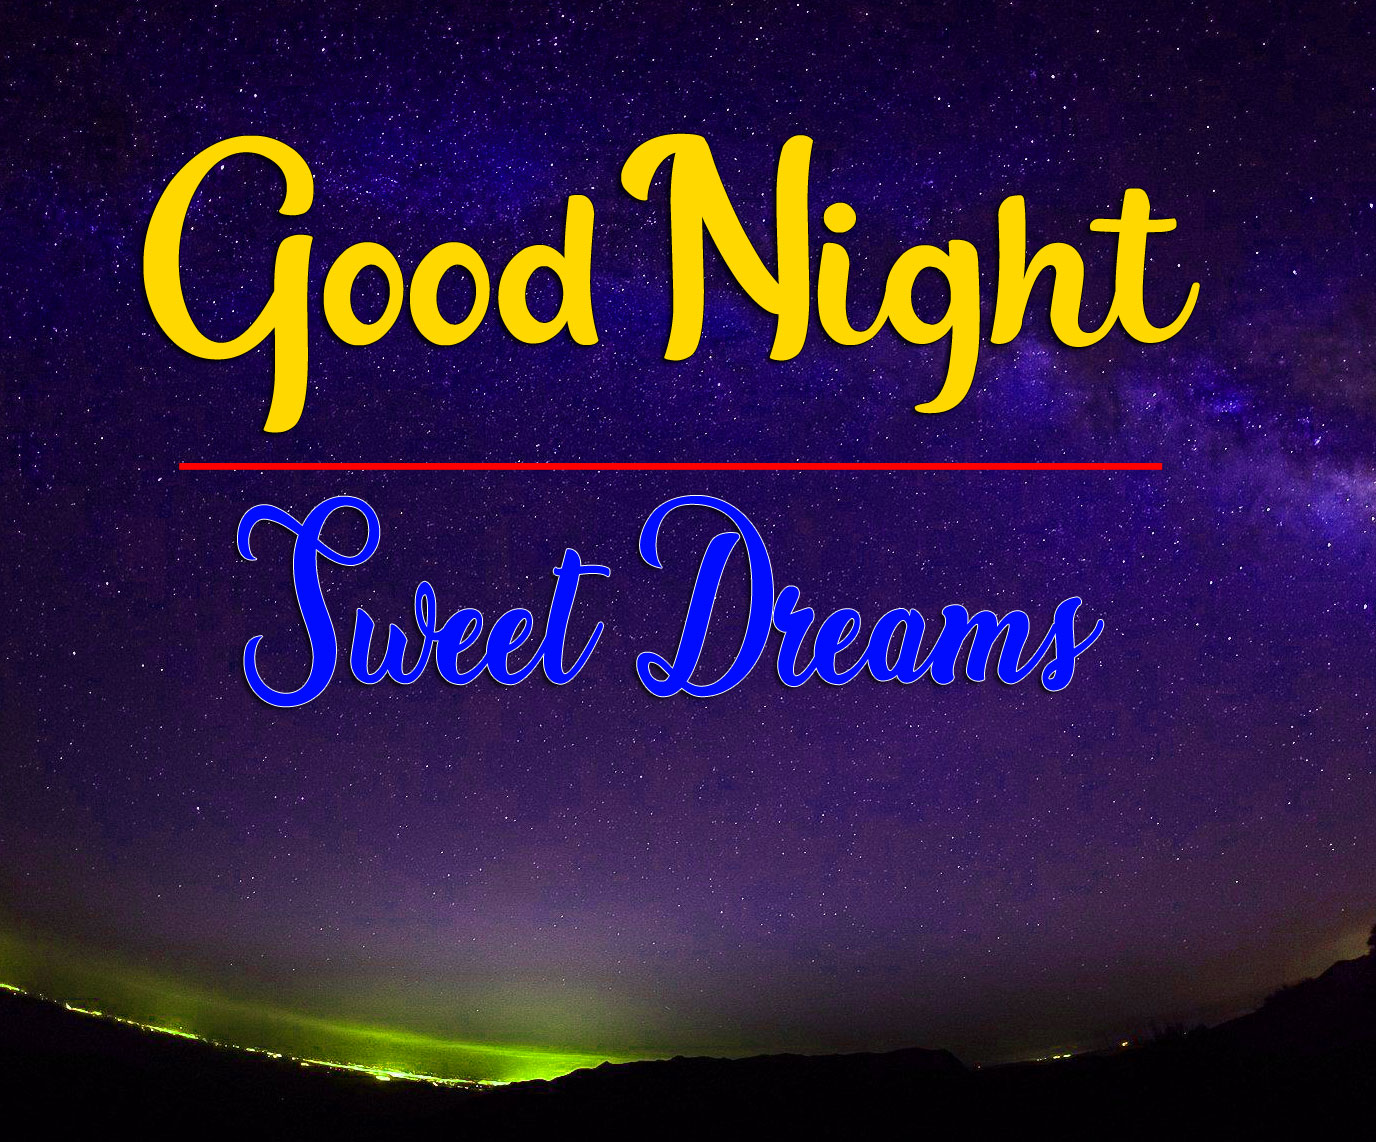 Free HD Good Night Pics Pictures